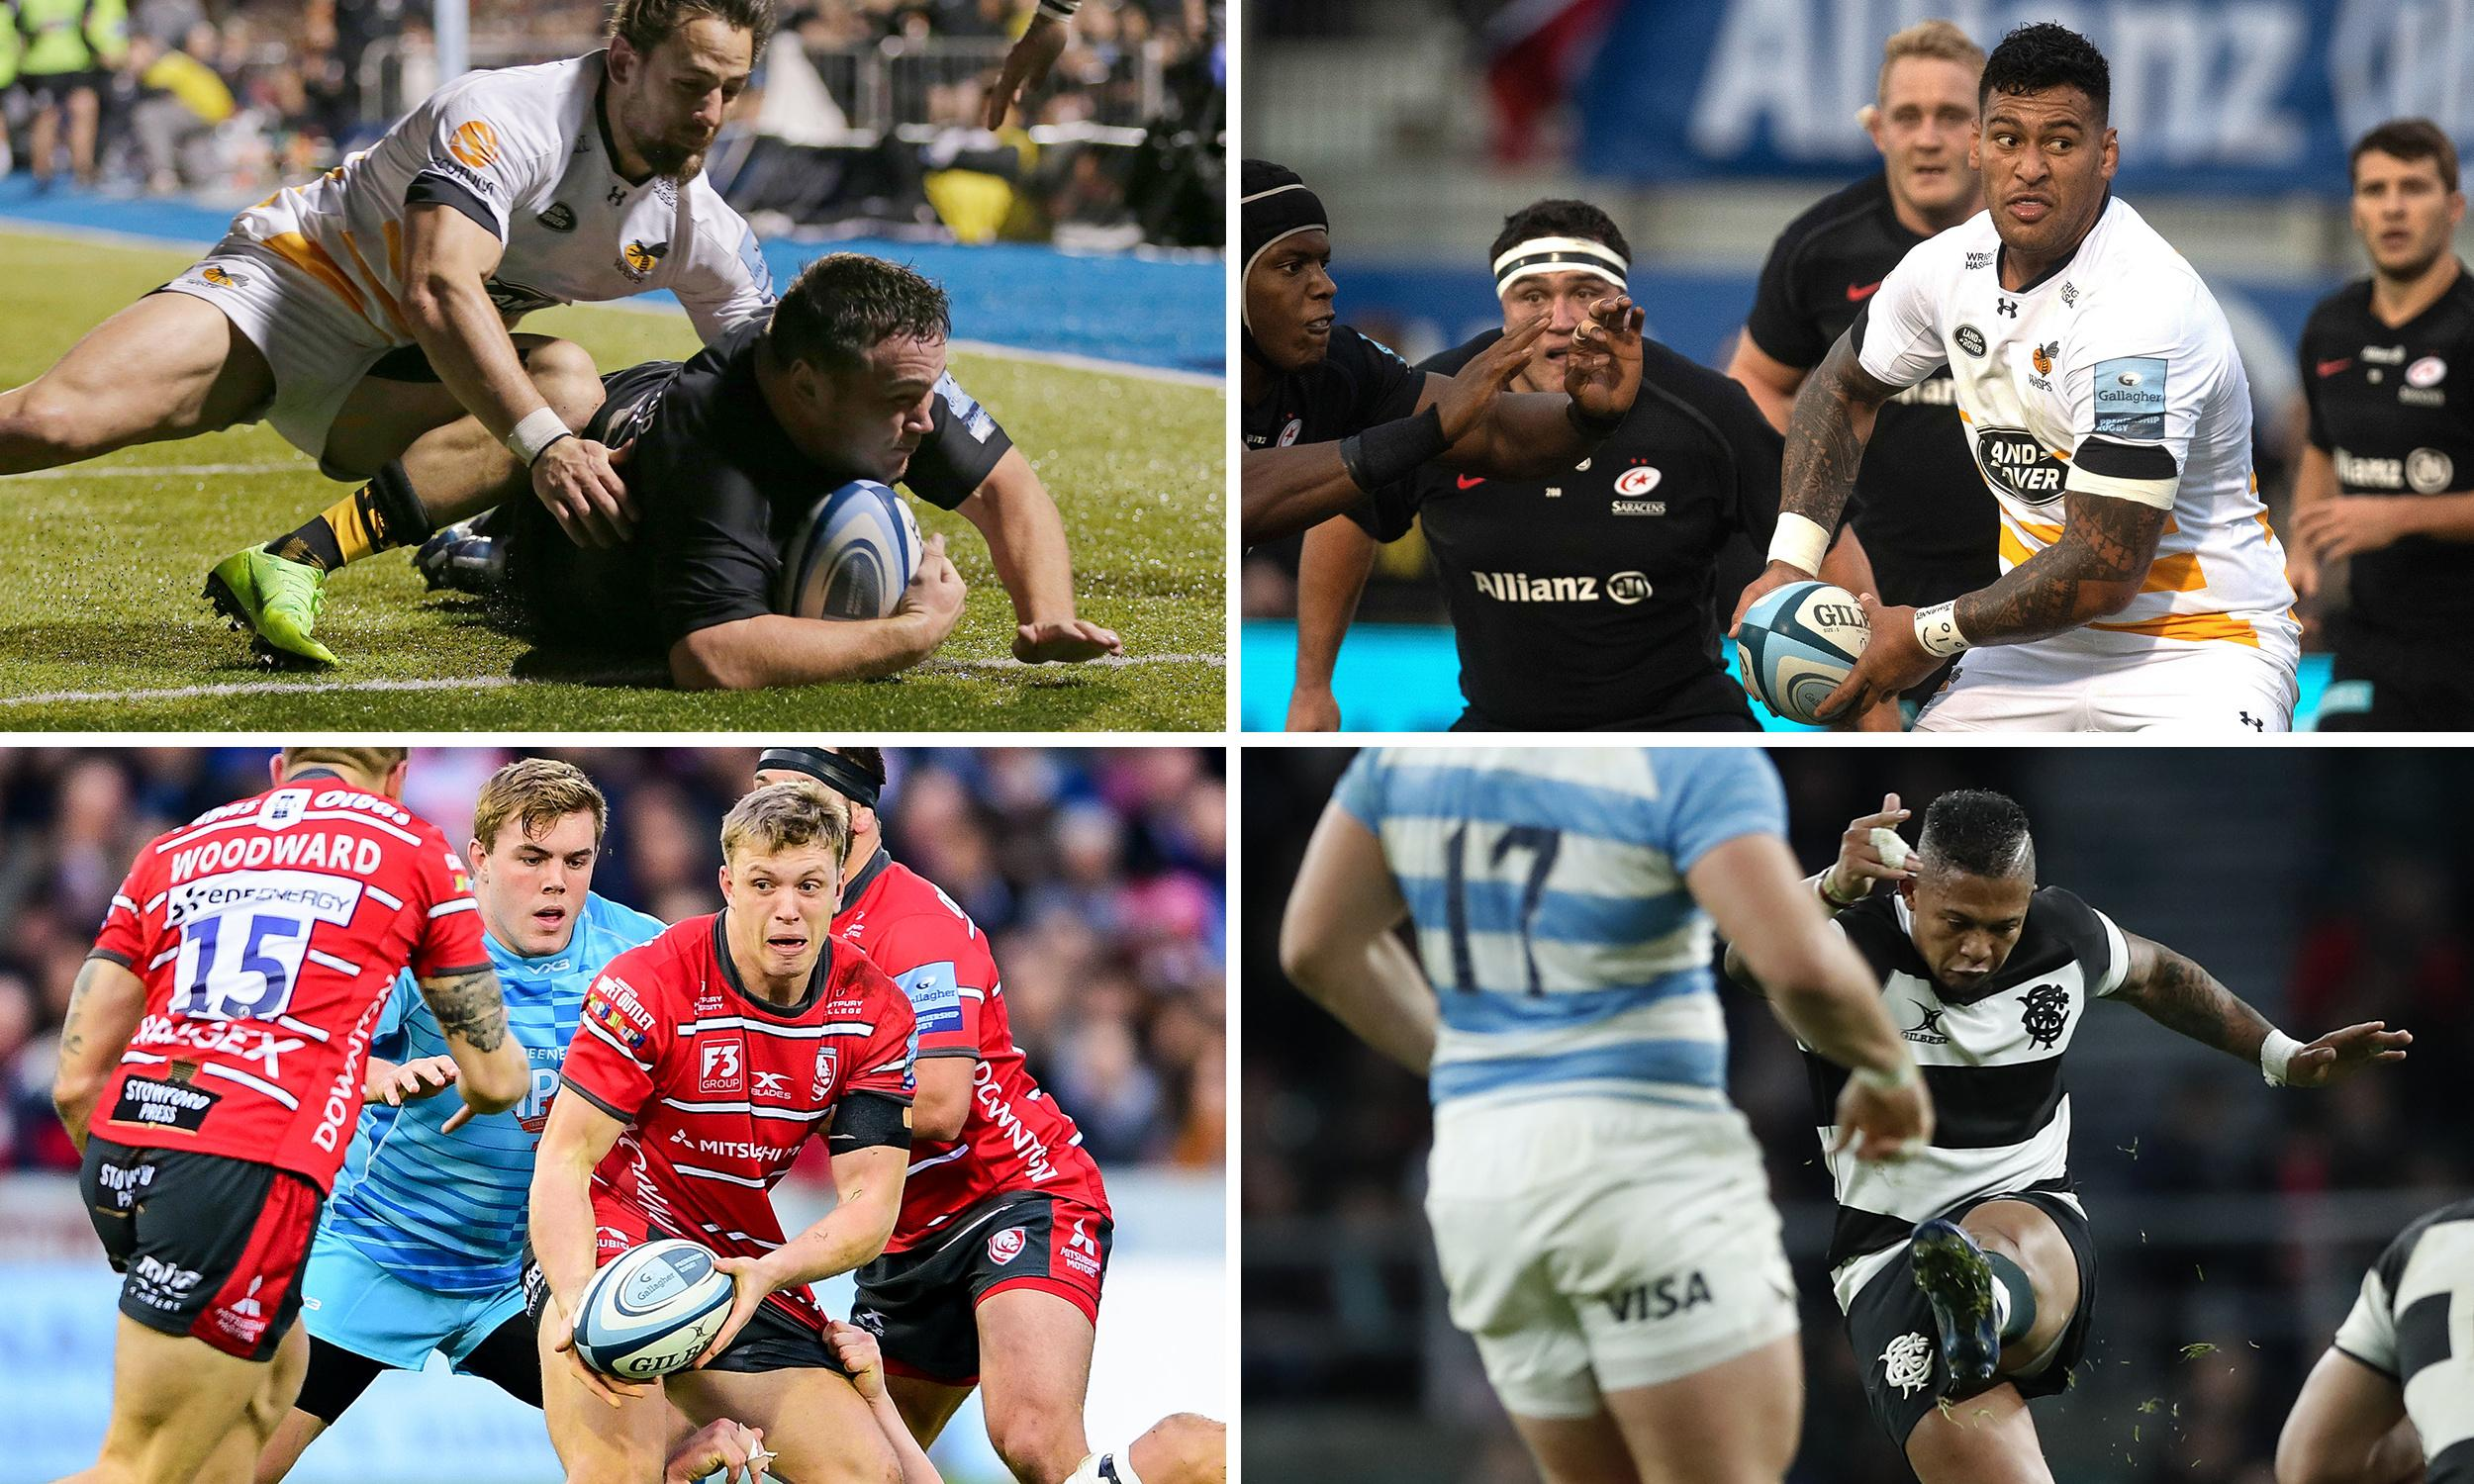 Rugby union: talking points from the Premiership and international action